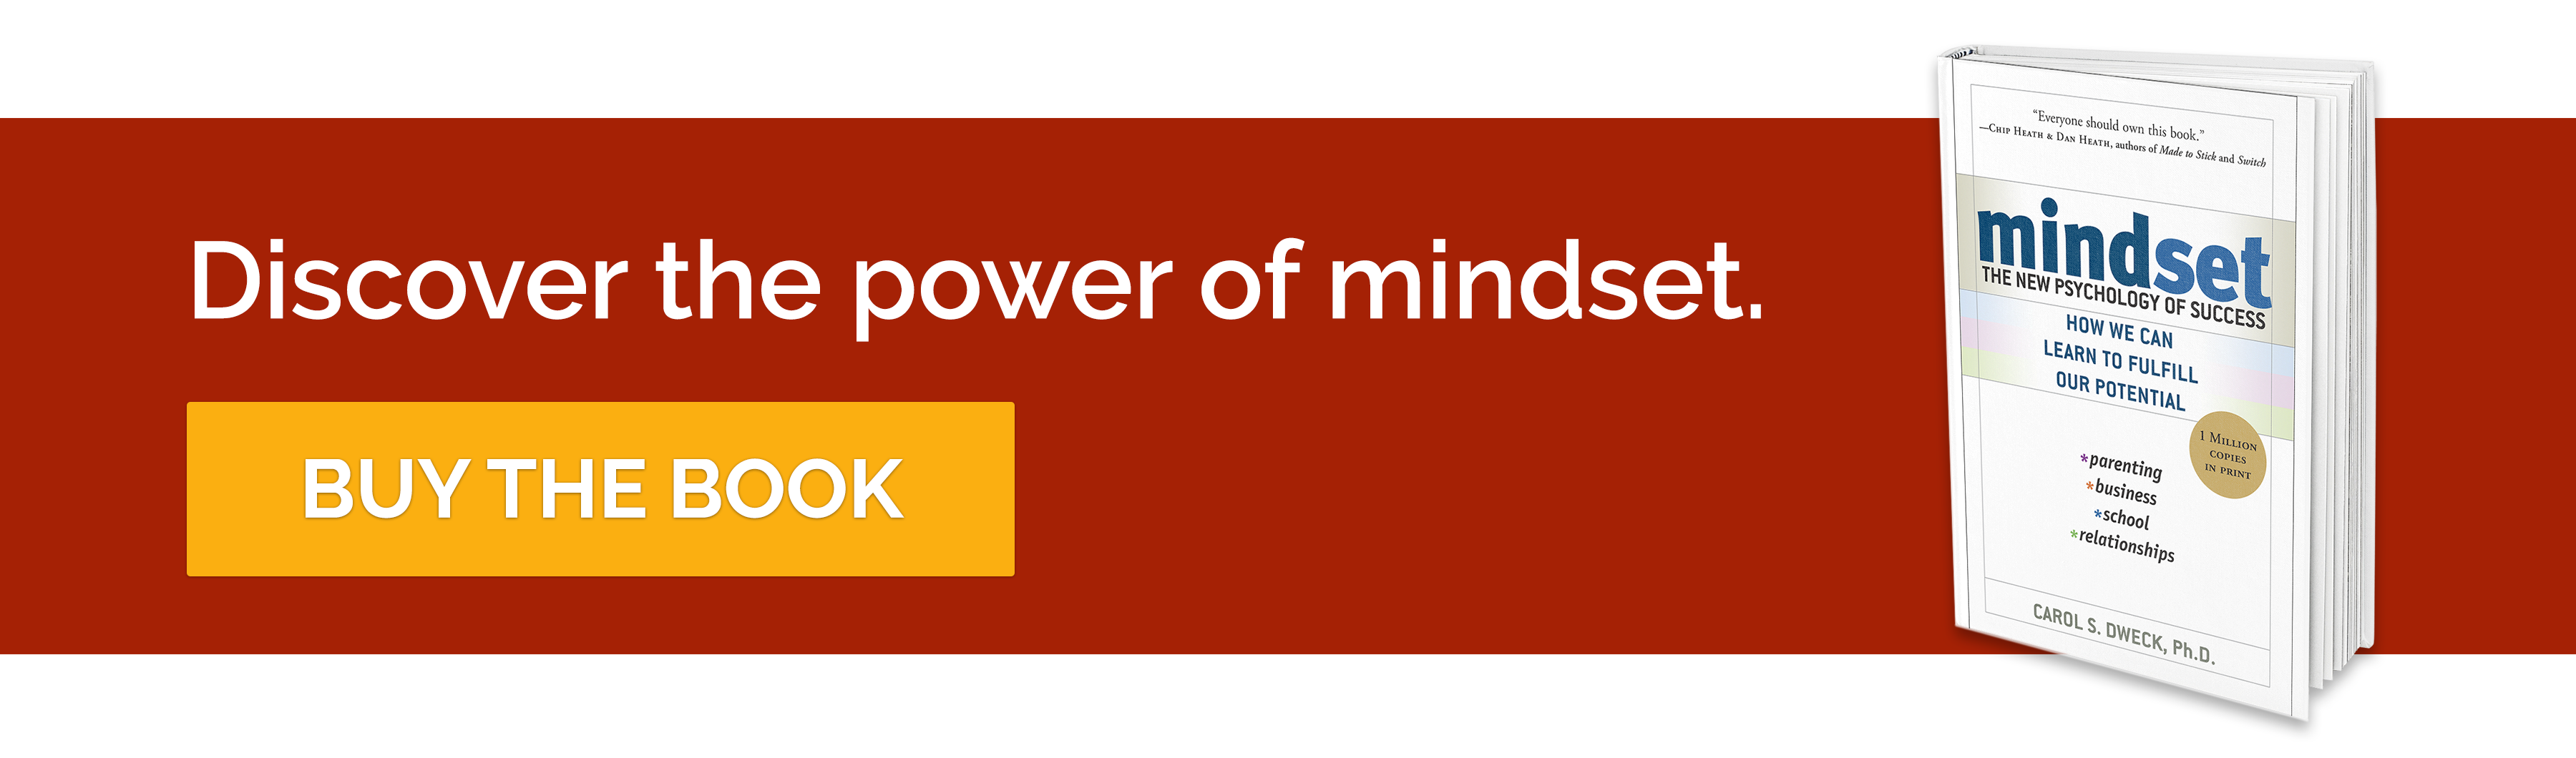 mindset book in bulk